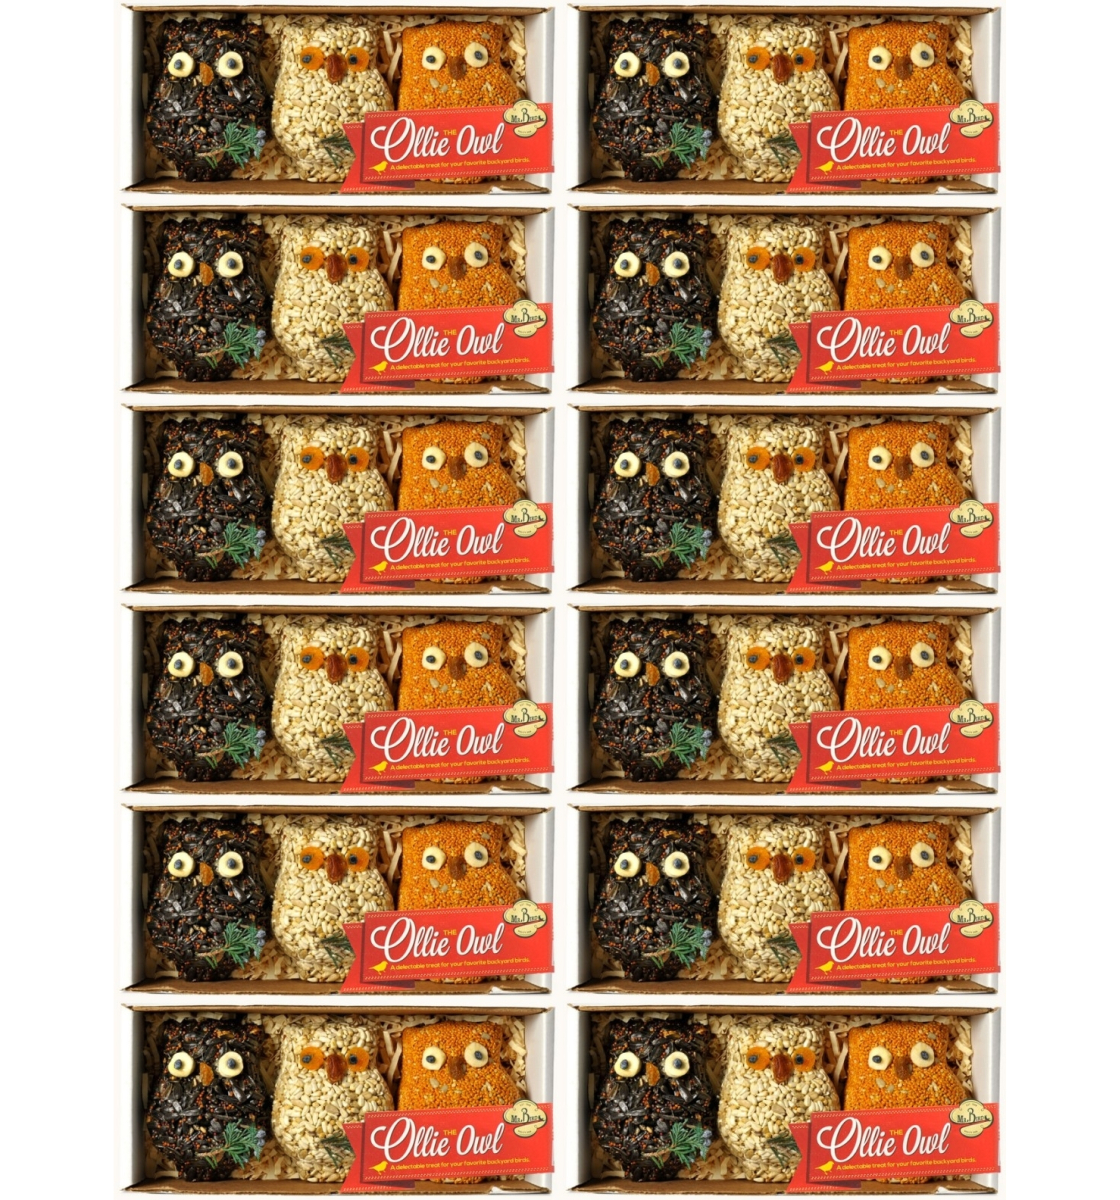 Ollie Owl Birdseed Ornament Gift Box 12/Pack